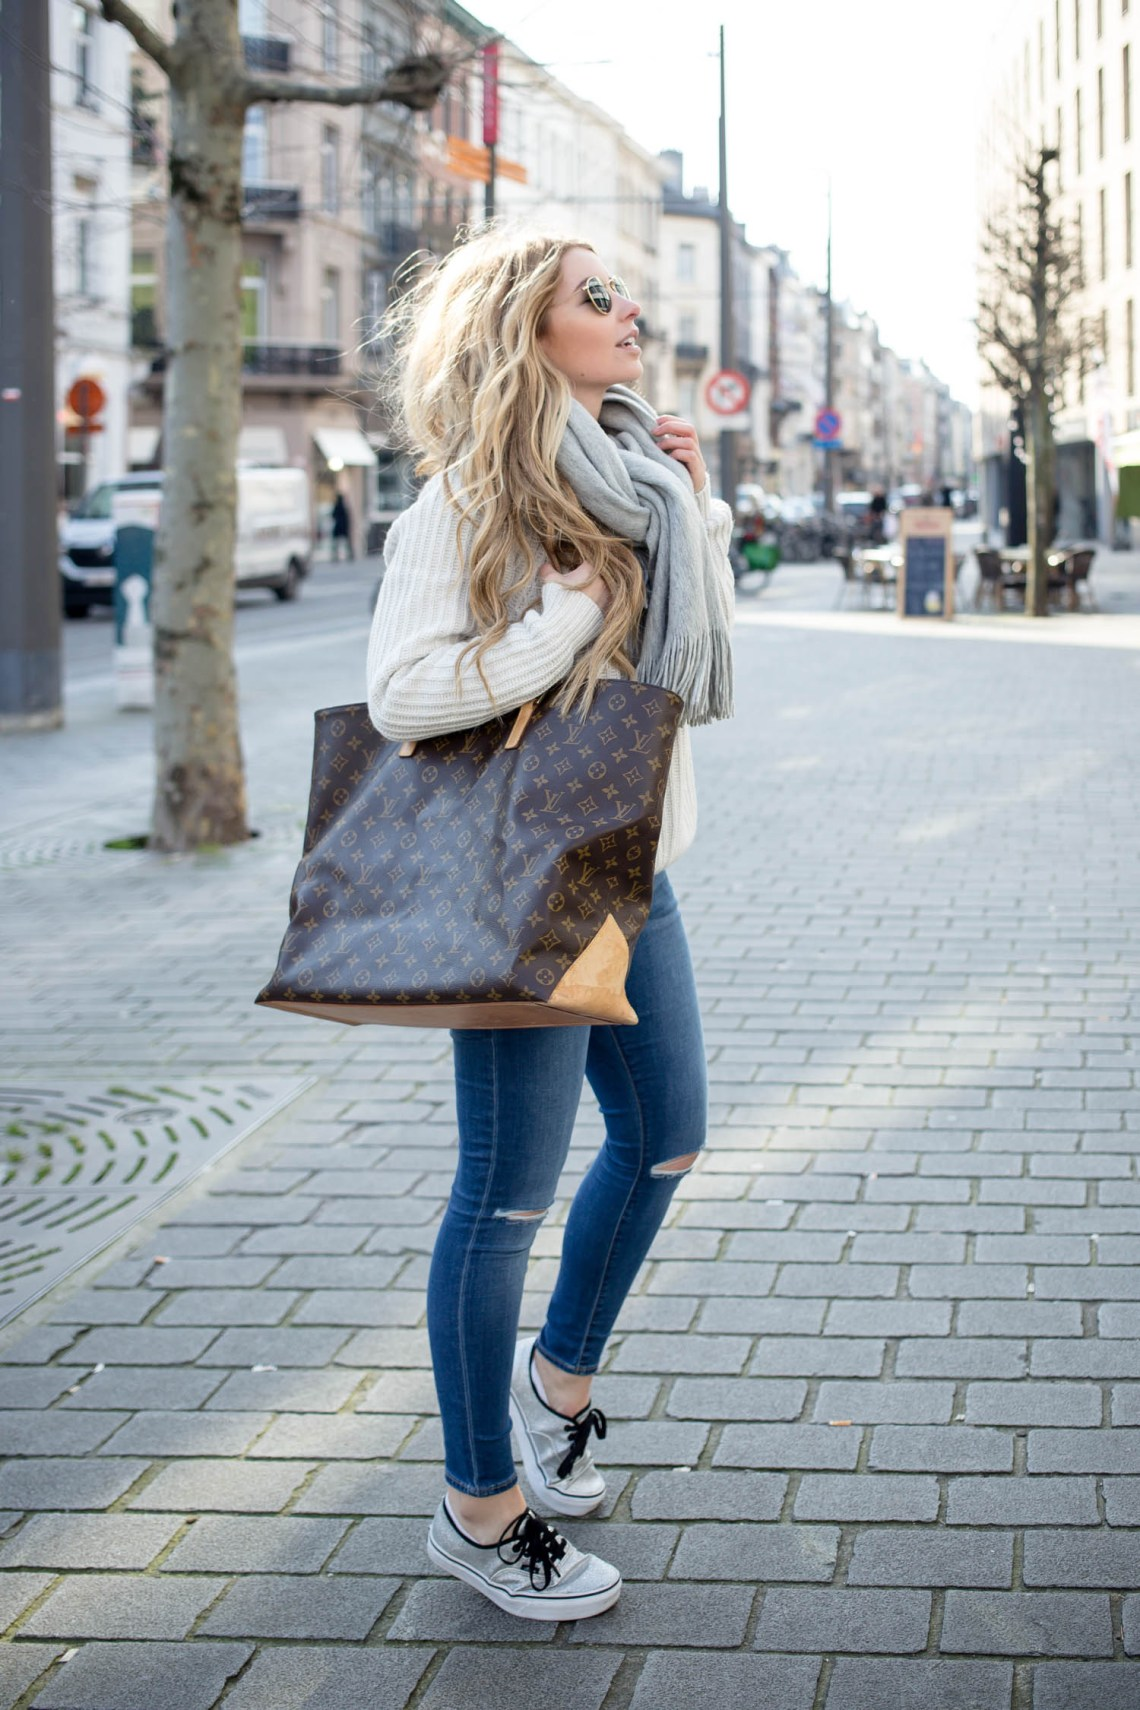 Elien Migalski Streetstyle Outfit-31